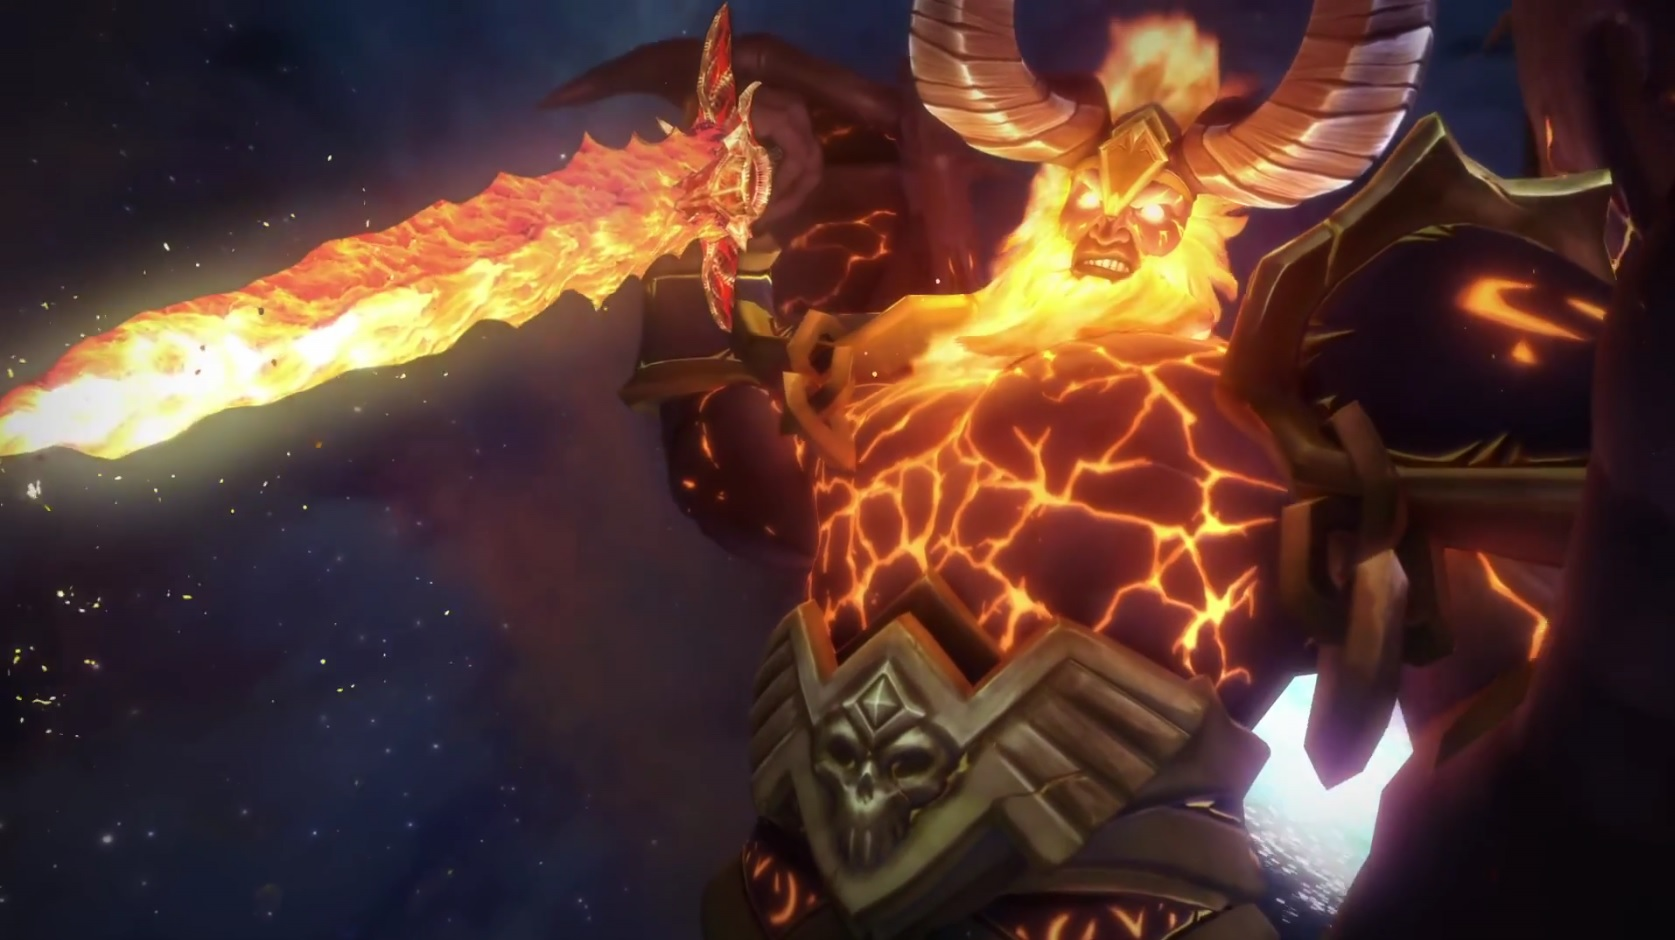 WoW Sargeras Attacks Azeroth